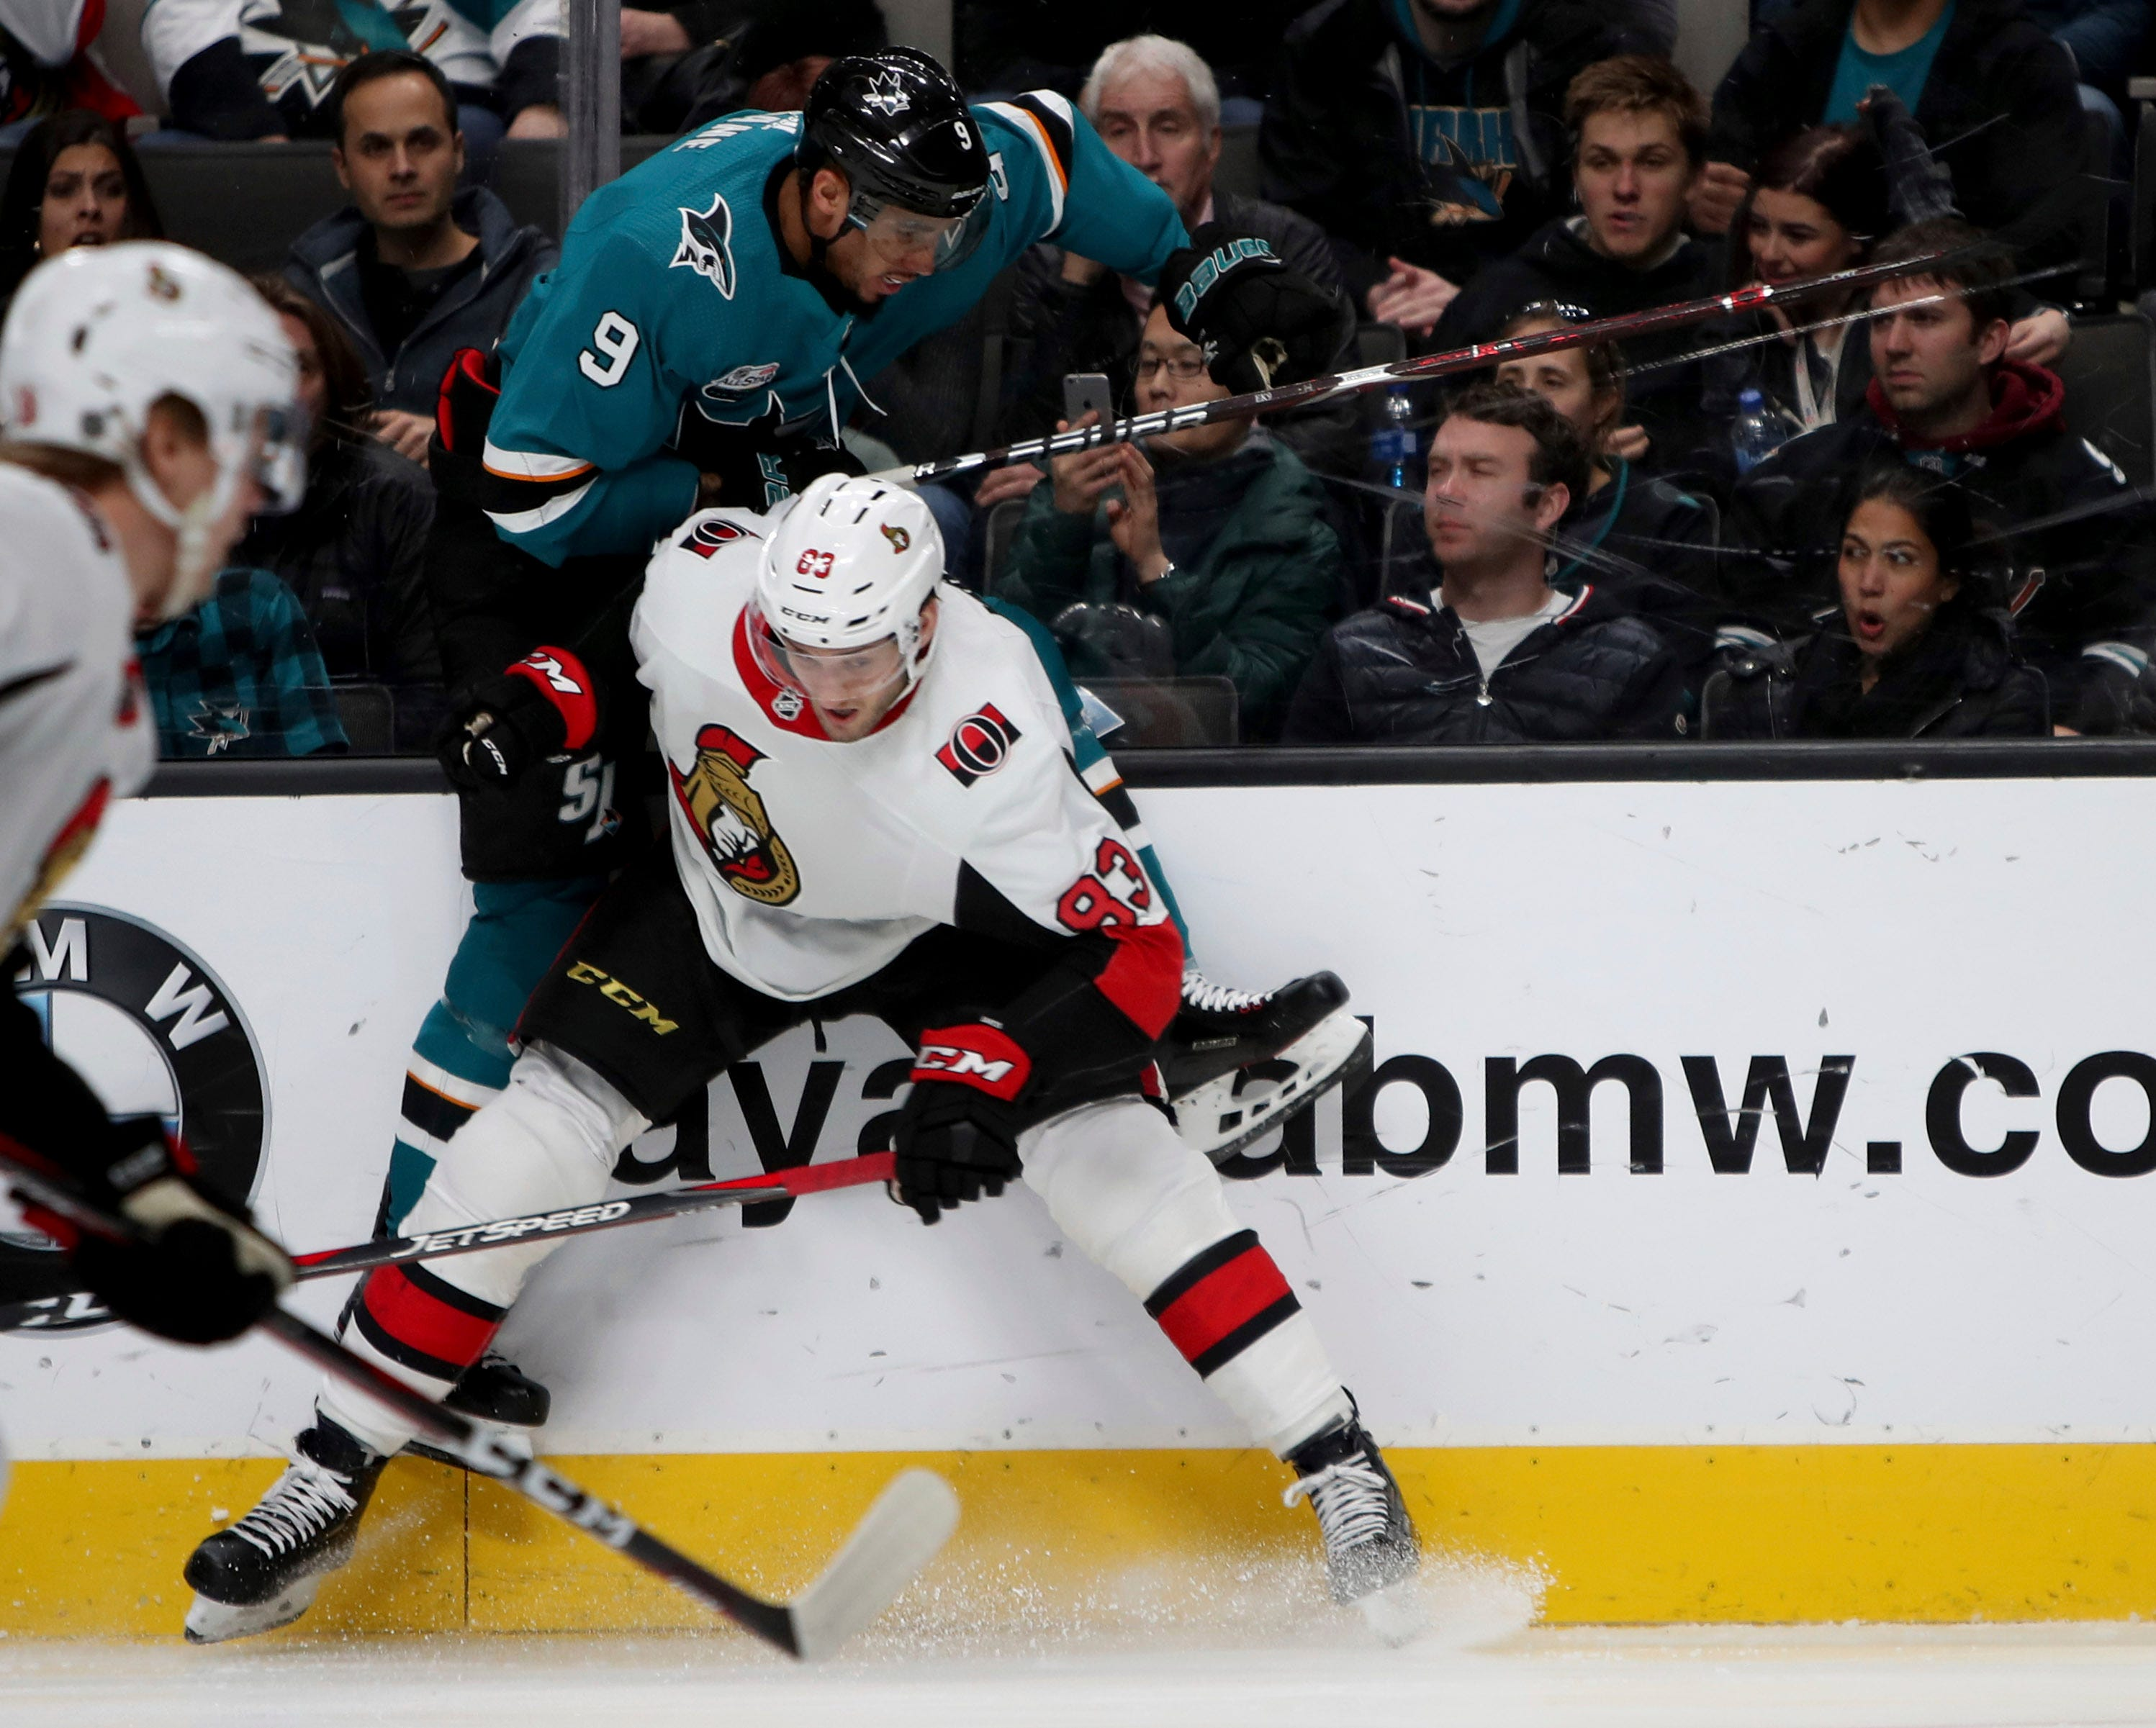 Burns, Jones lead Sharks to 4-1 win over Senators